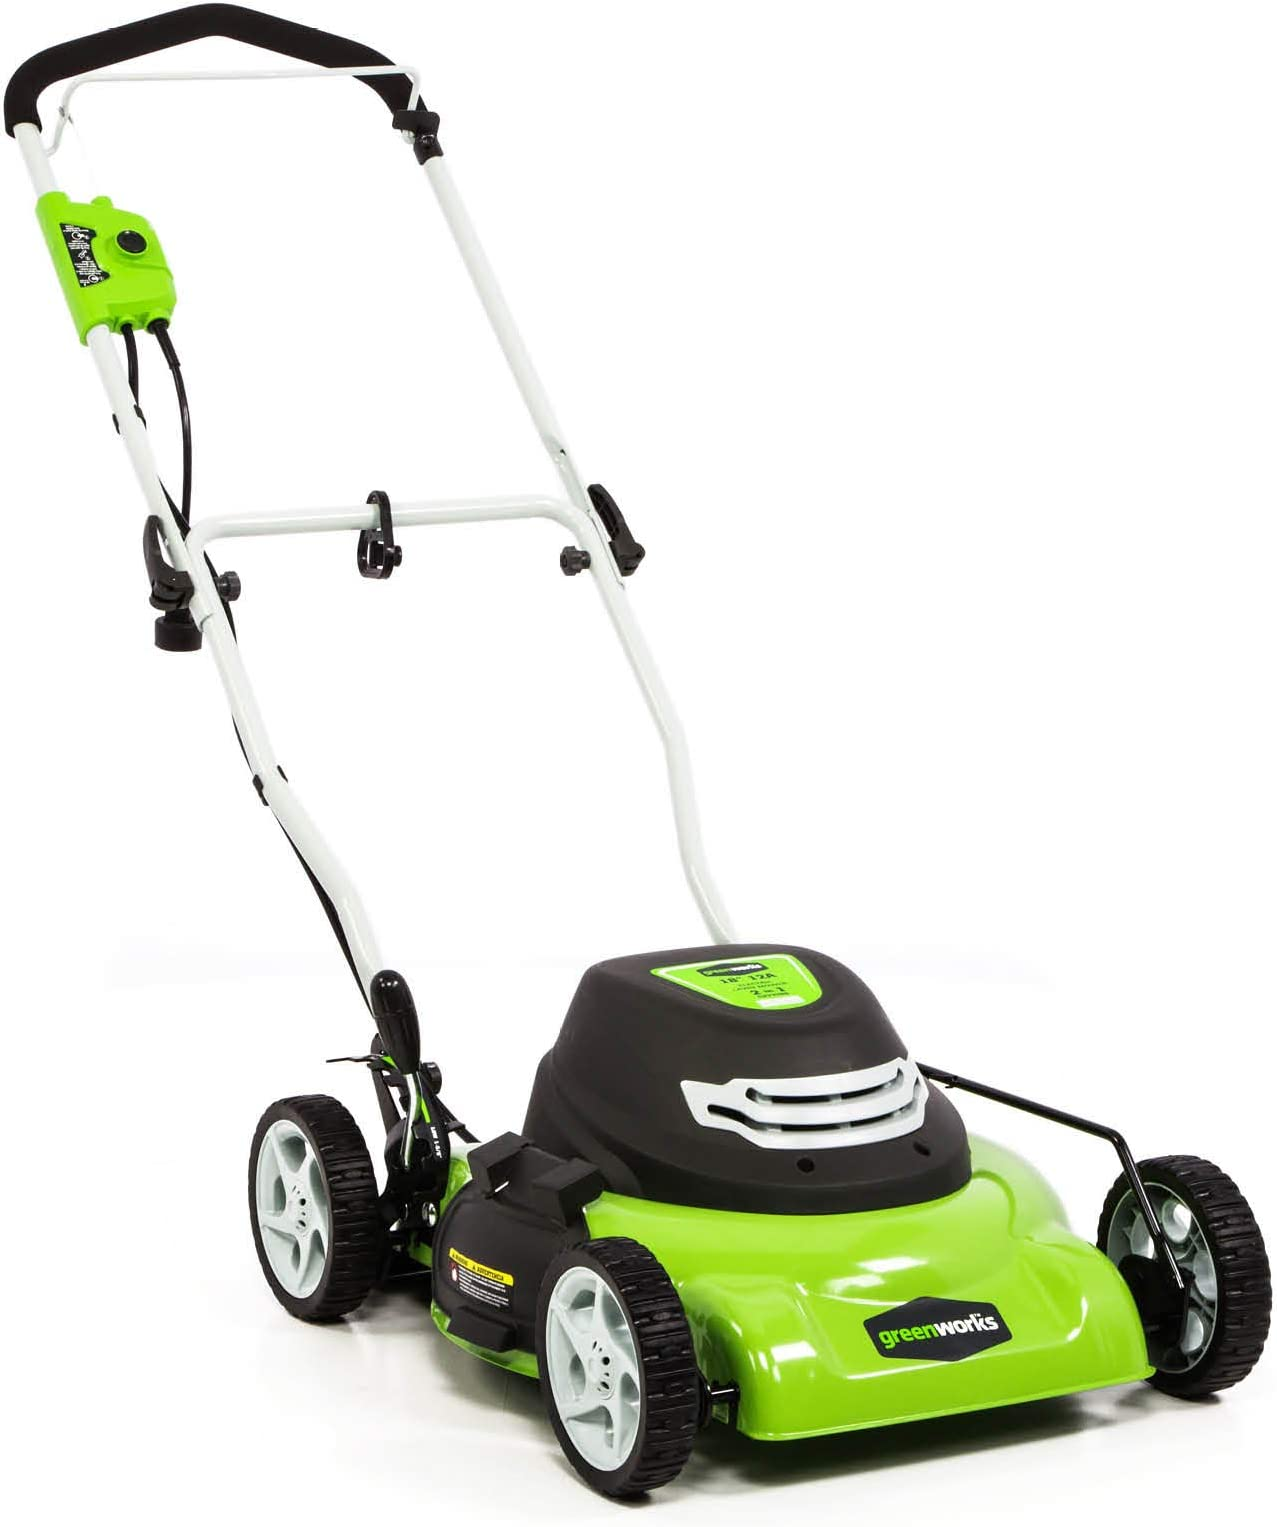 Greenworks 12 Amp 18-Inch Corded Electric Lawn Mower, 25012